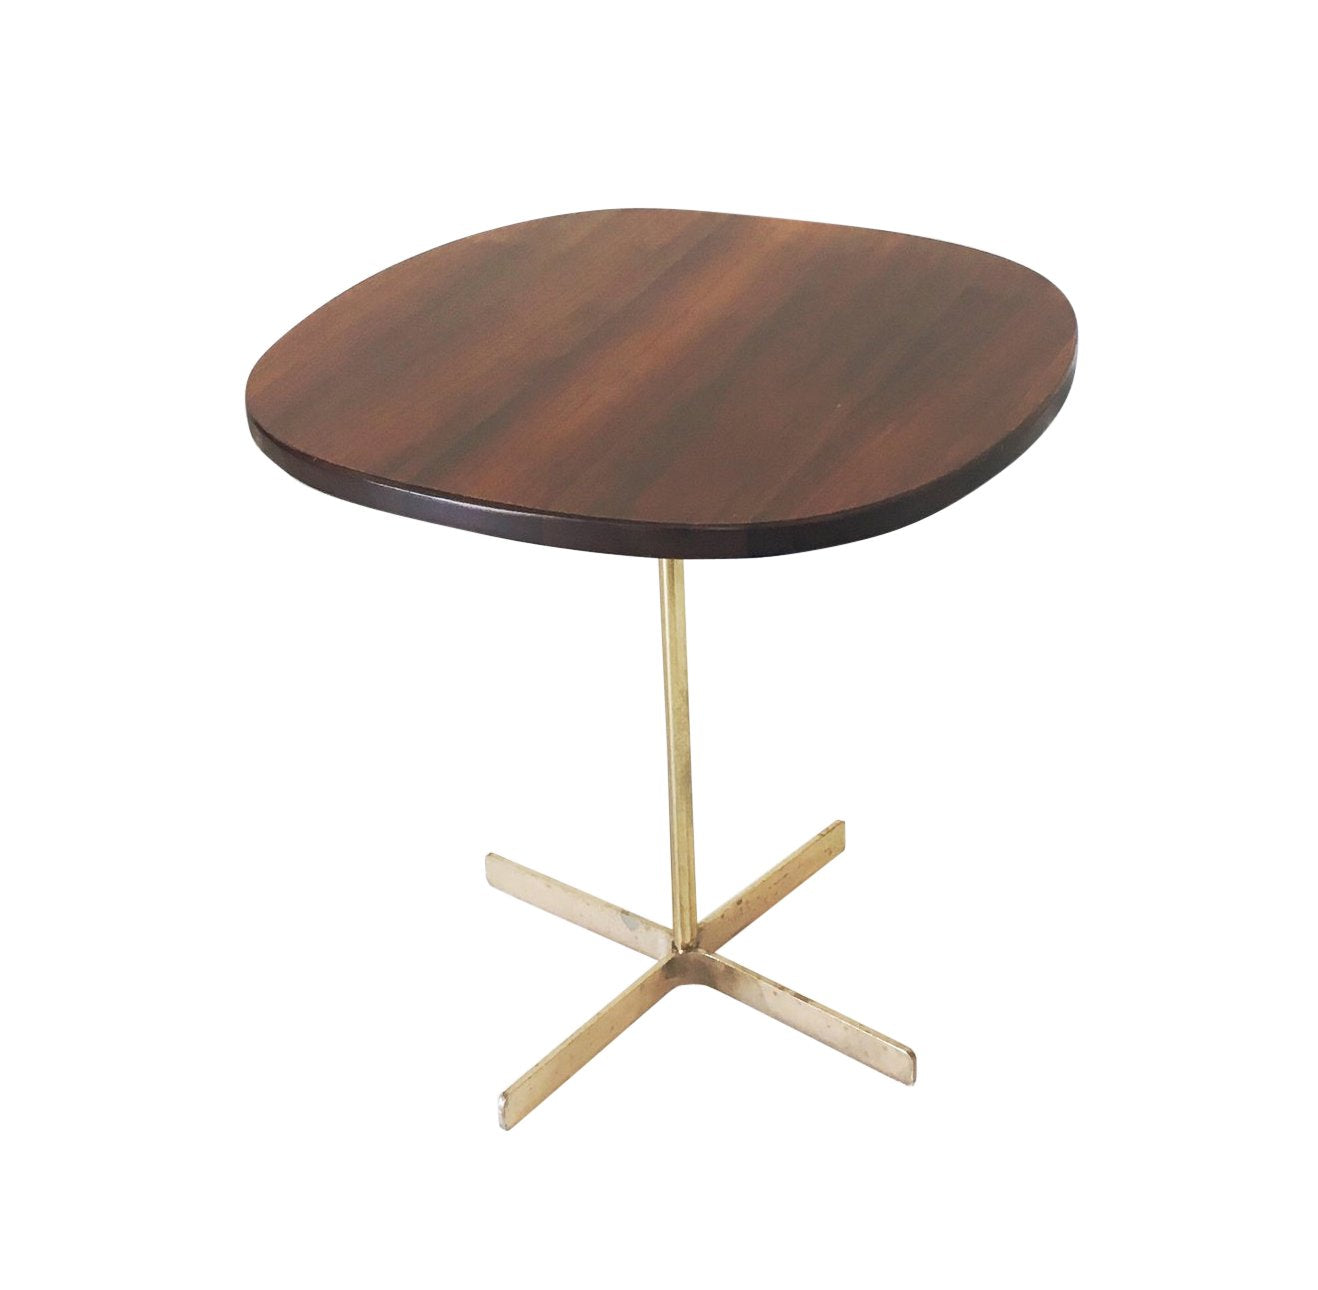 Allan Gould Side Table with Brass Base, circa 1950's - The Space Detroit